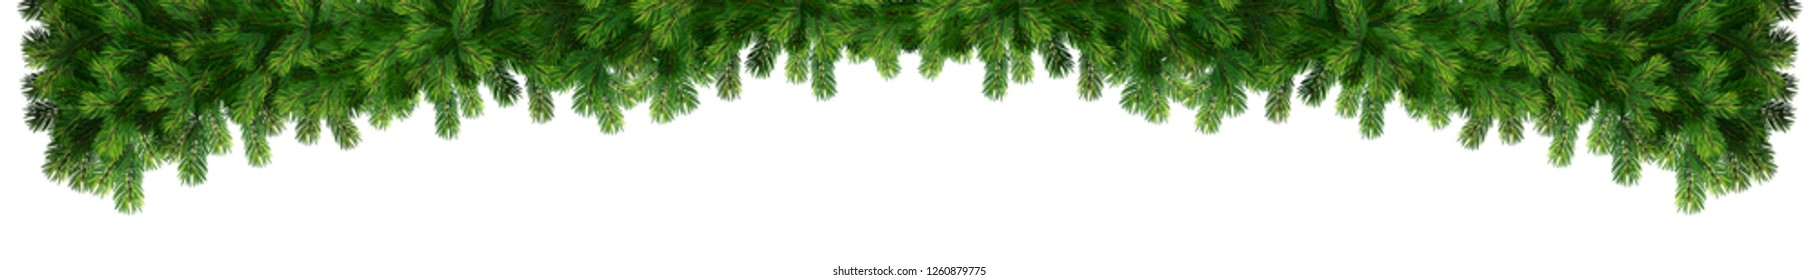 New year holiday decoration element. Decorative isolated border from a Christmas tree branches